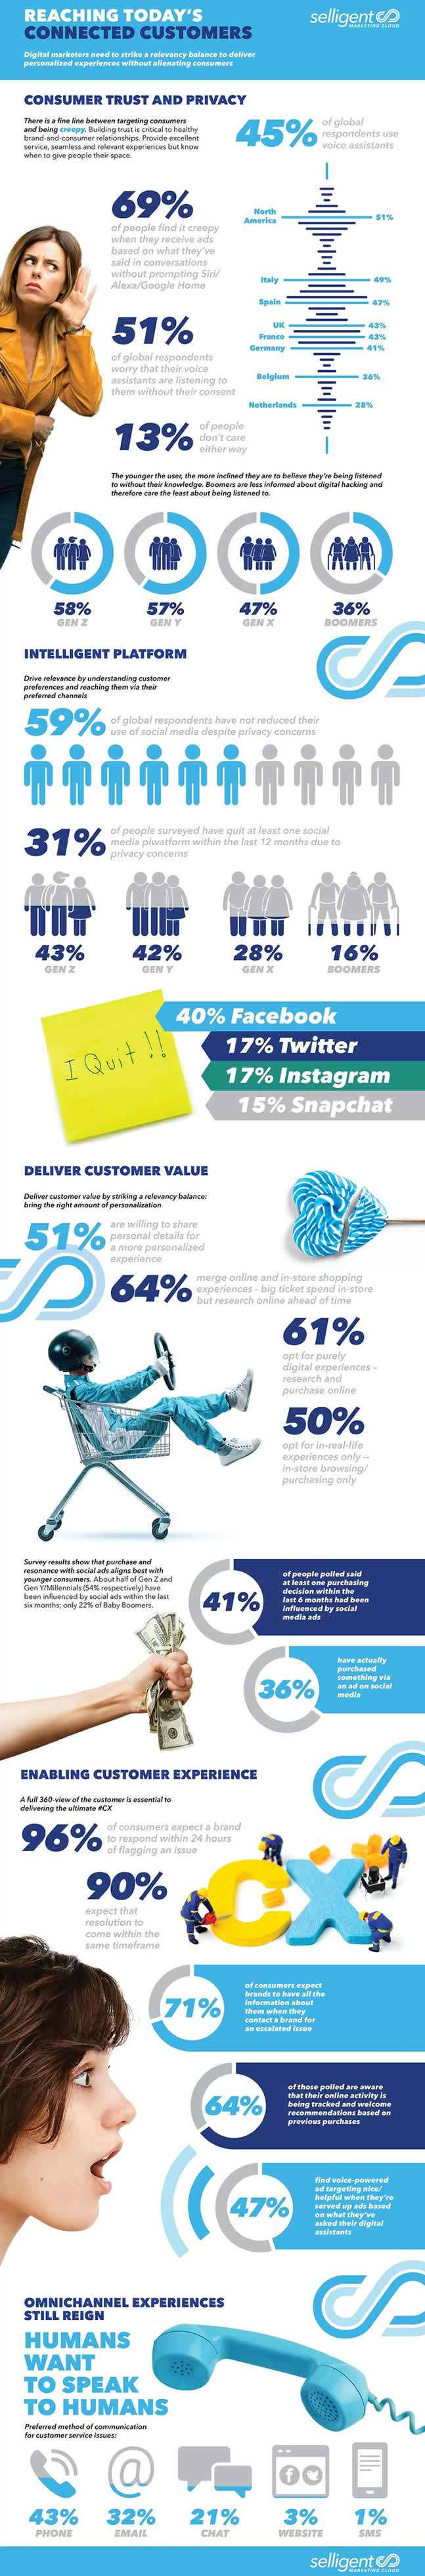 Selligent Global Connected Consumer Index report 2019 infographic - source and large version